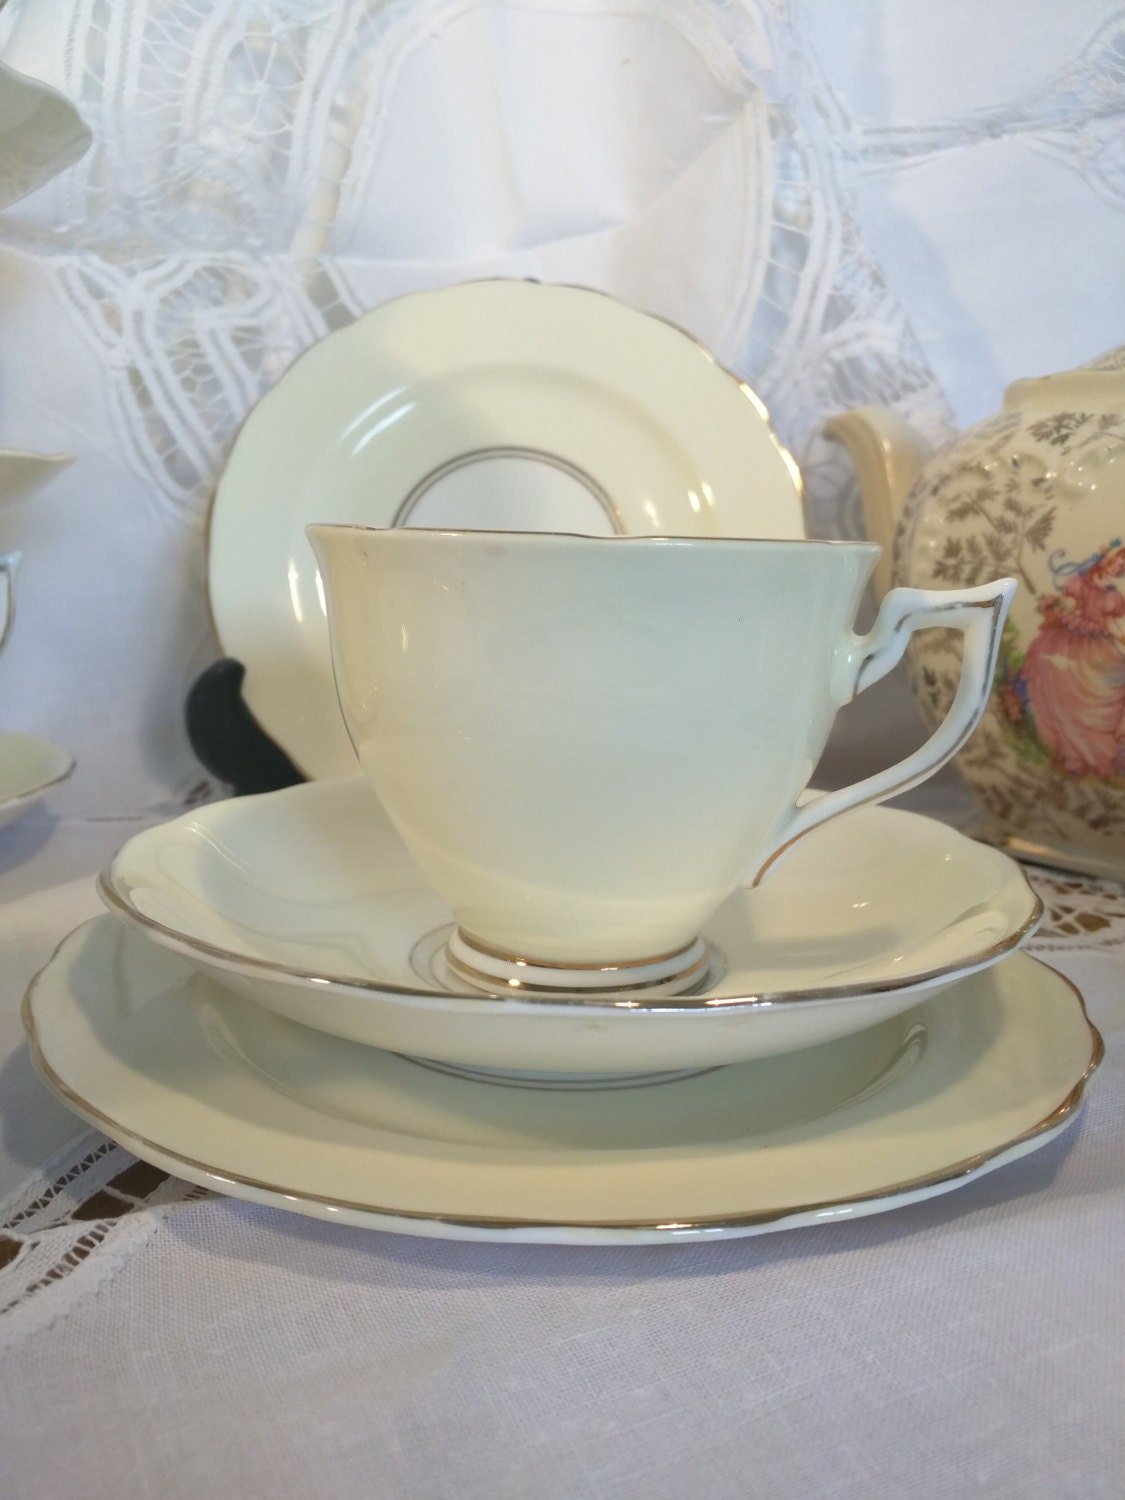 Dating melba bone china